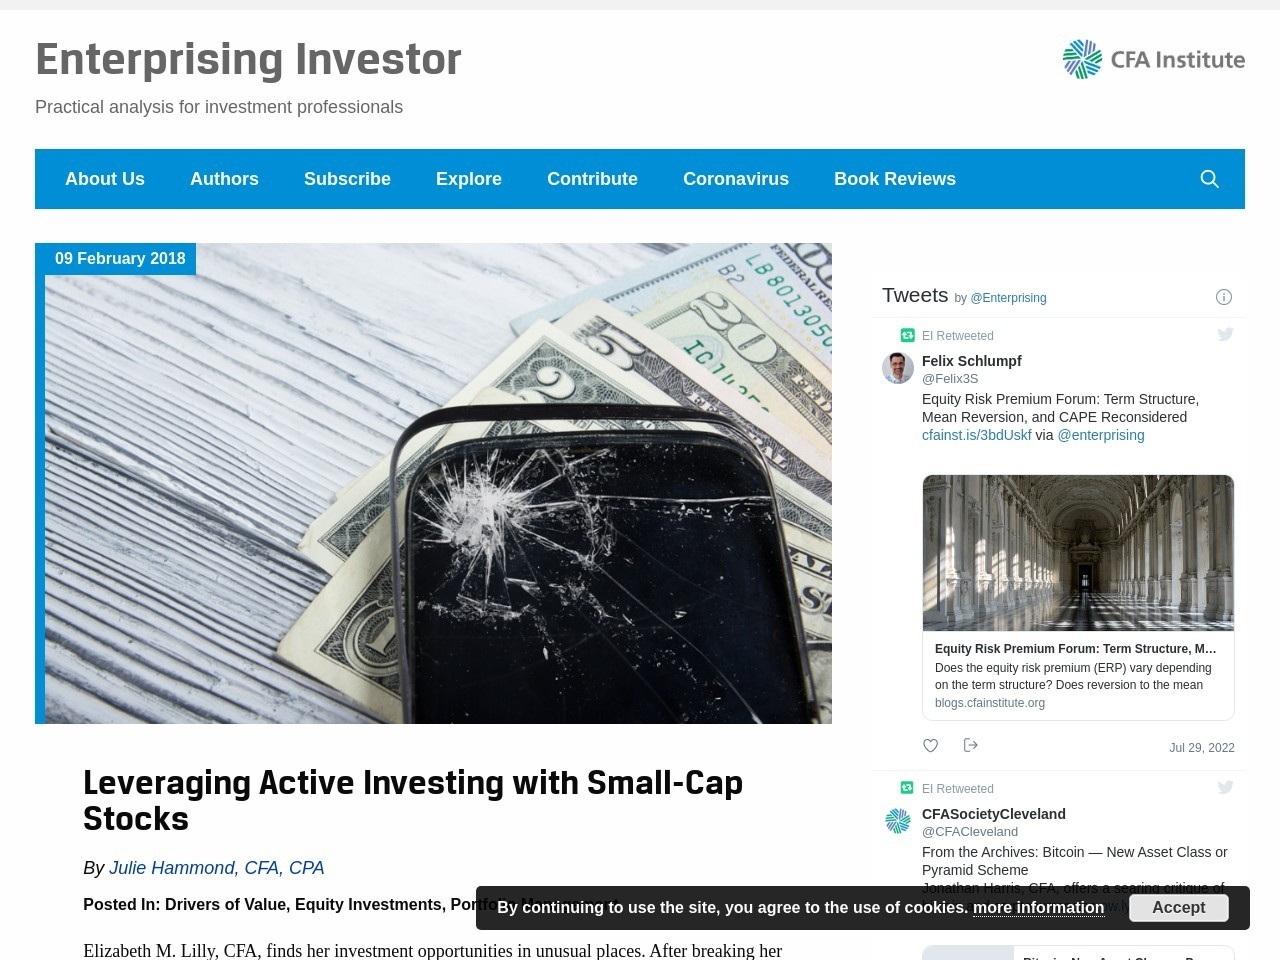 Leveraging Active Investing with Small-Cap Stocks